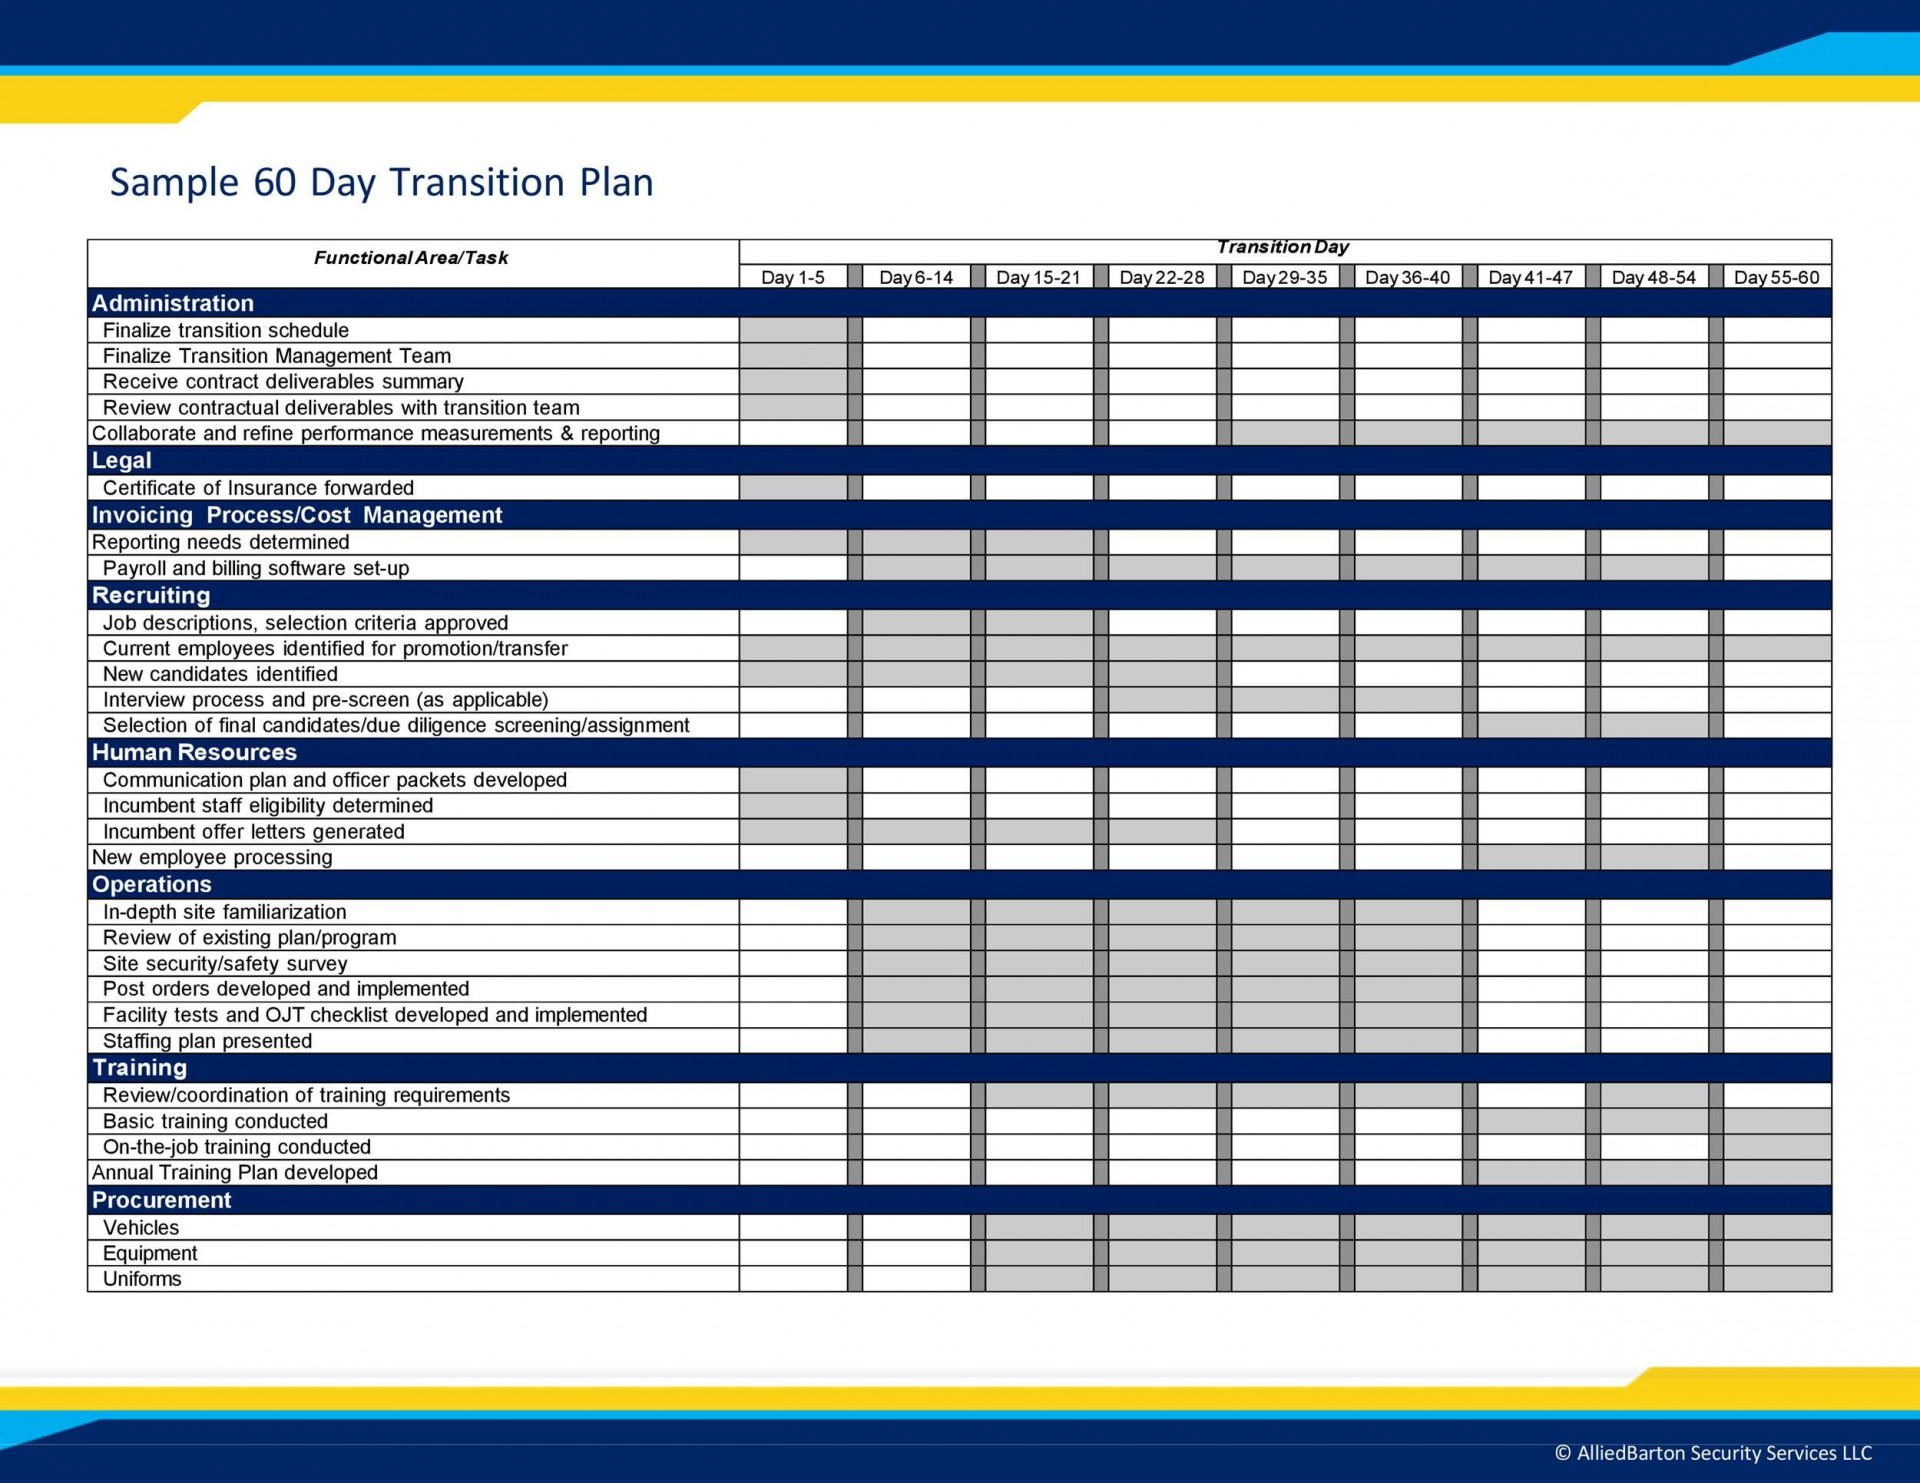 009 Fascinating Software Project Transition Plan Sample High Resolution  Template Excel1920